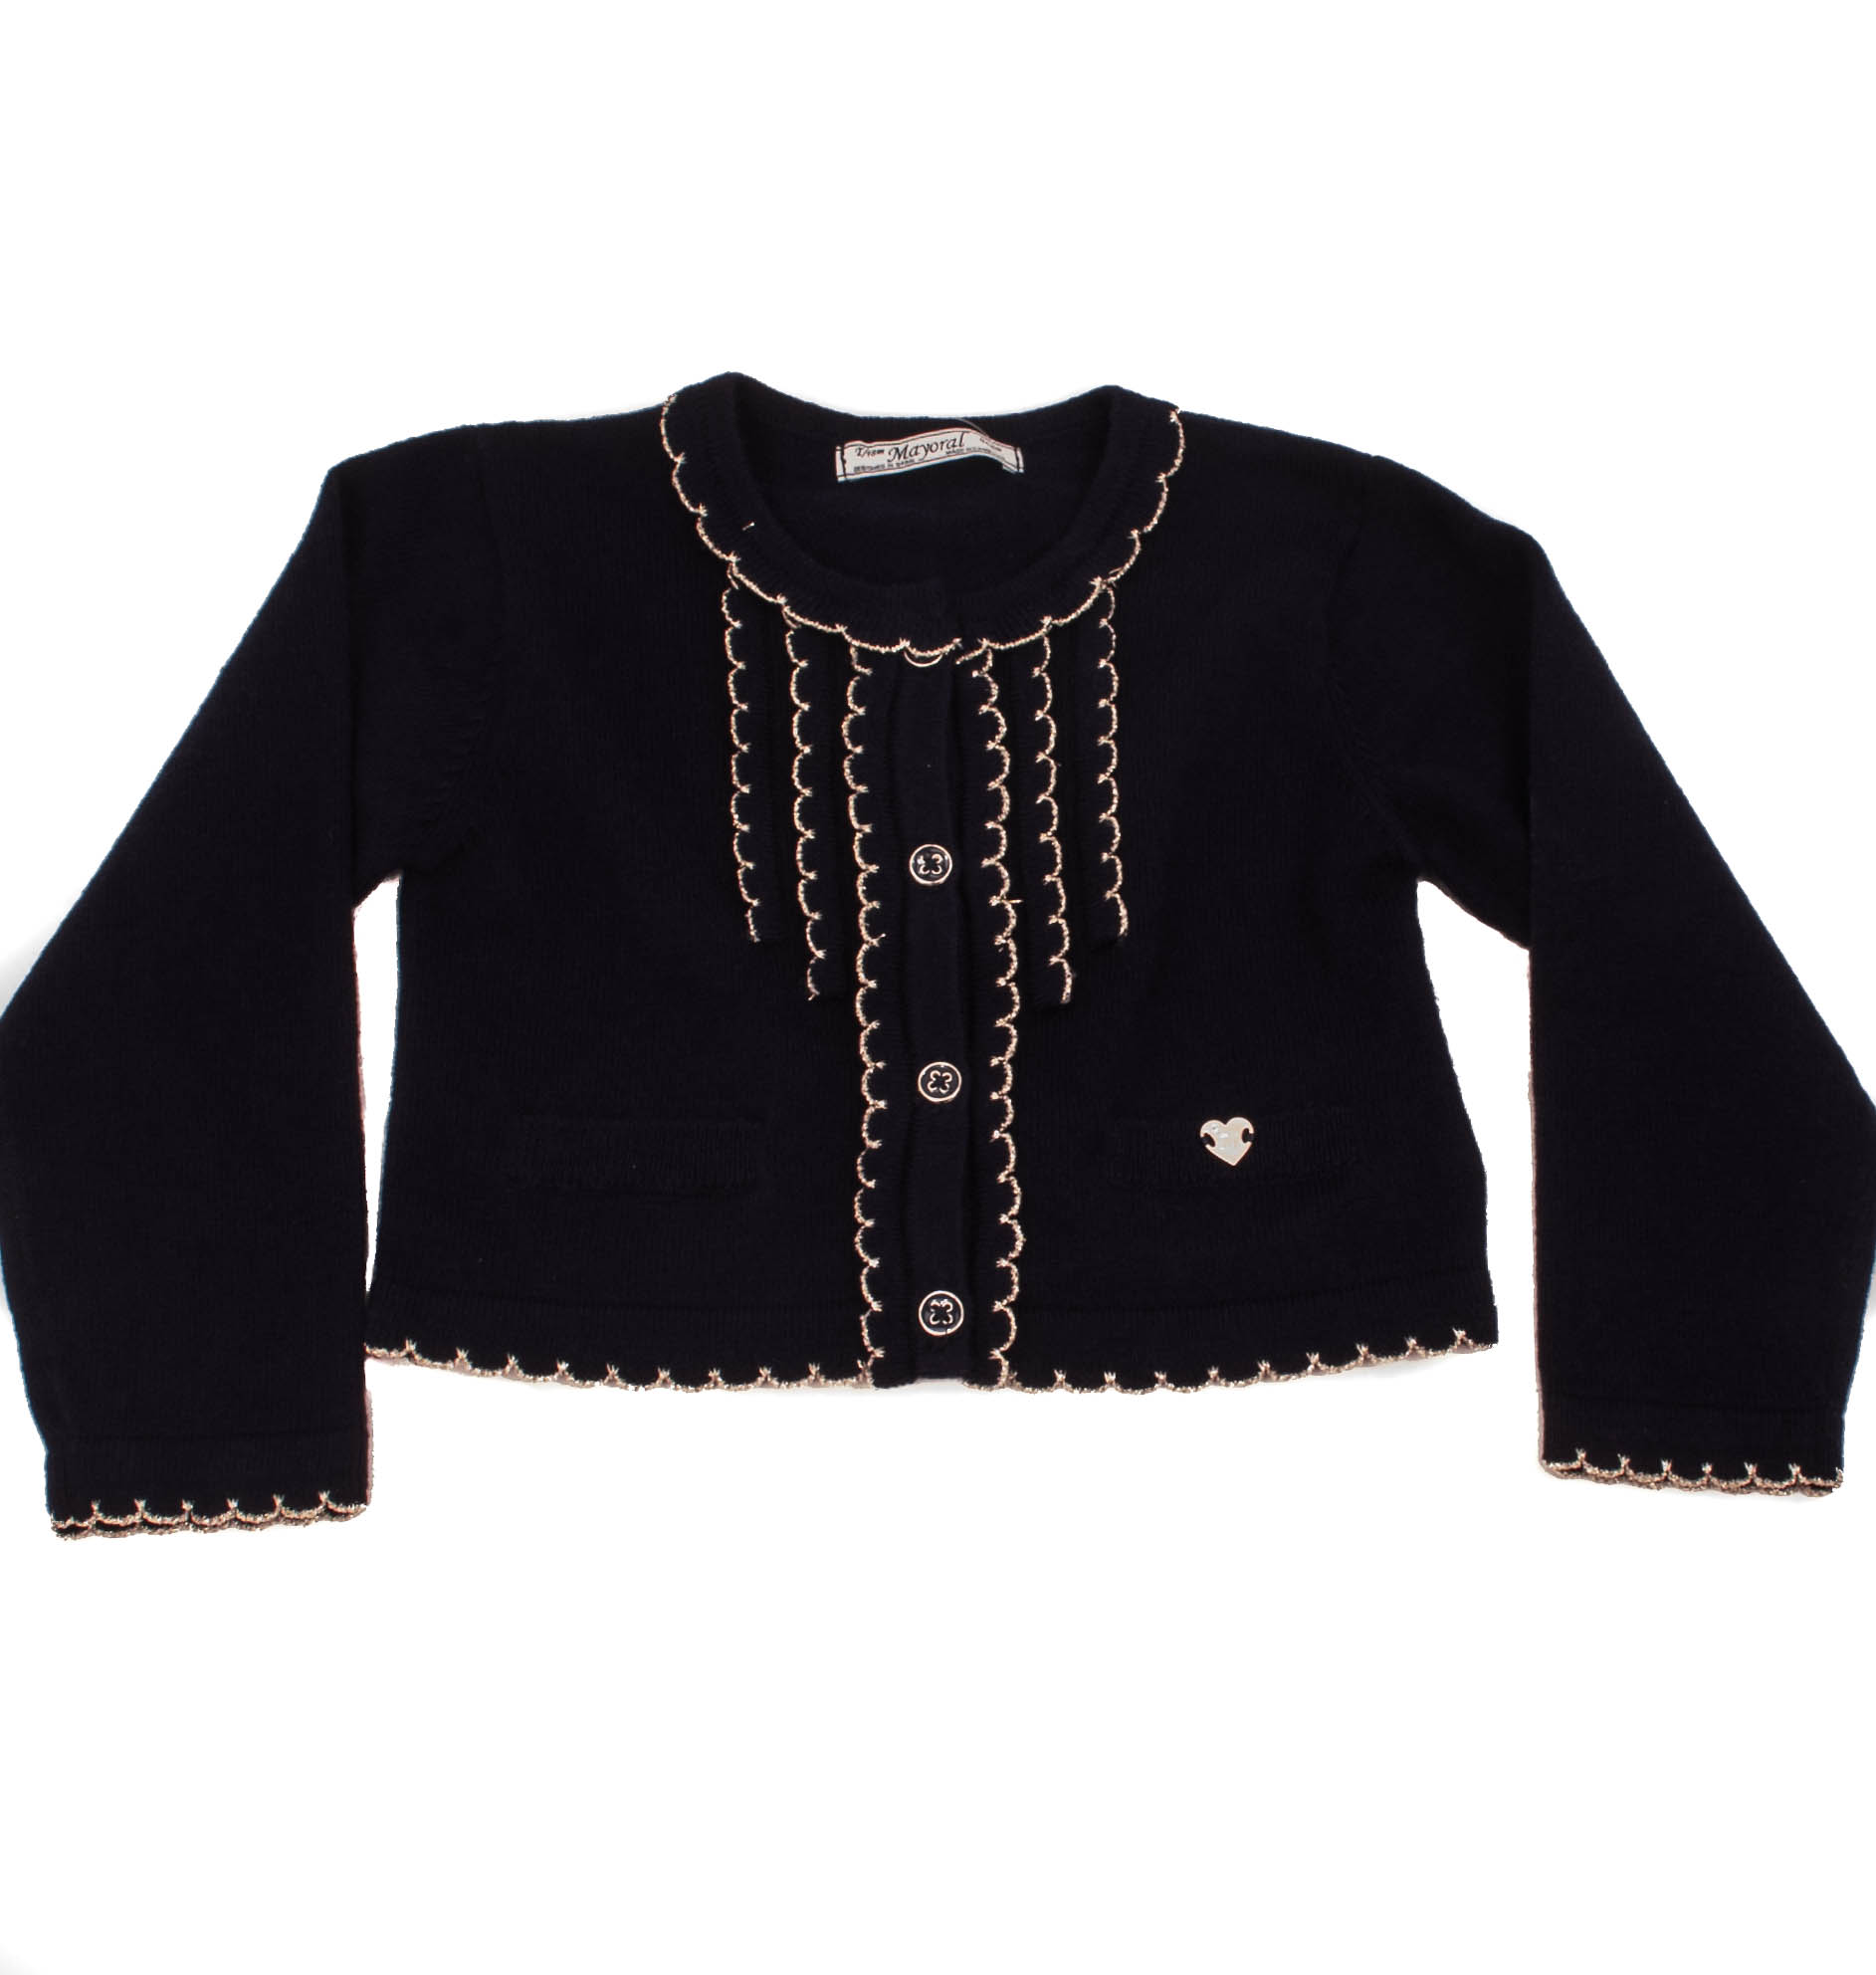 2326 Mayoral Navy Cardigan with Pockets and Gold Trim